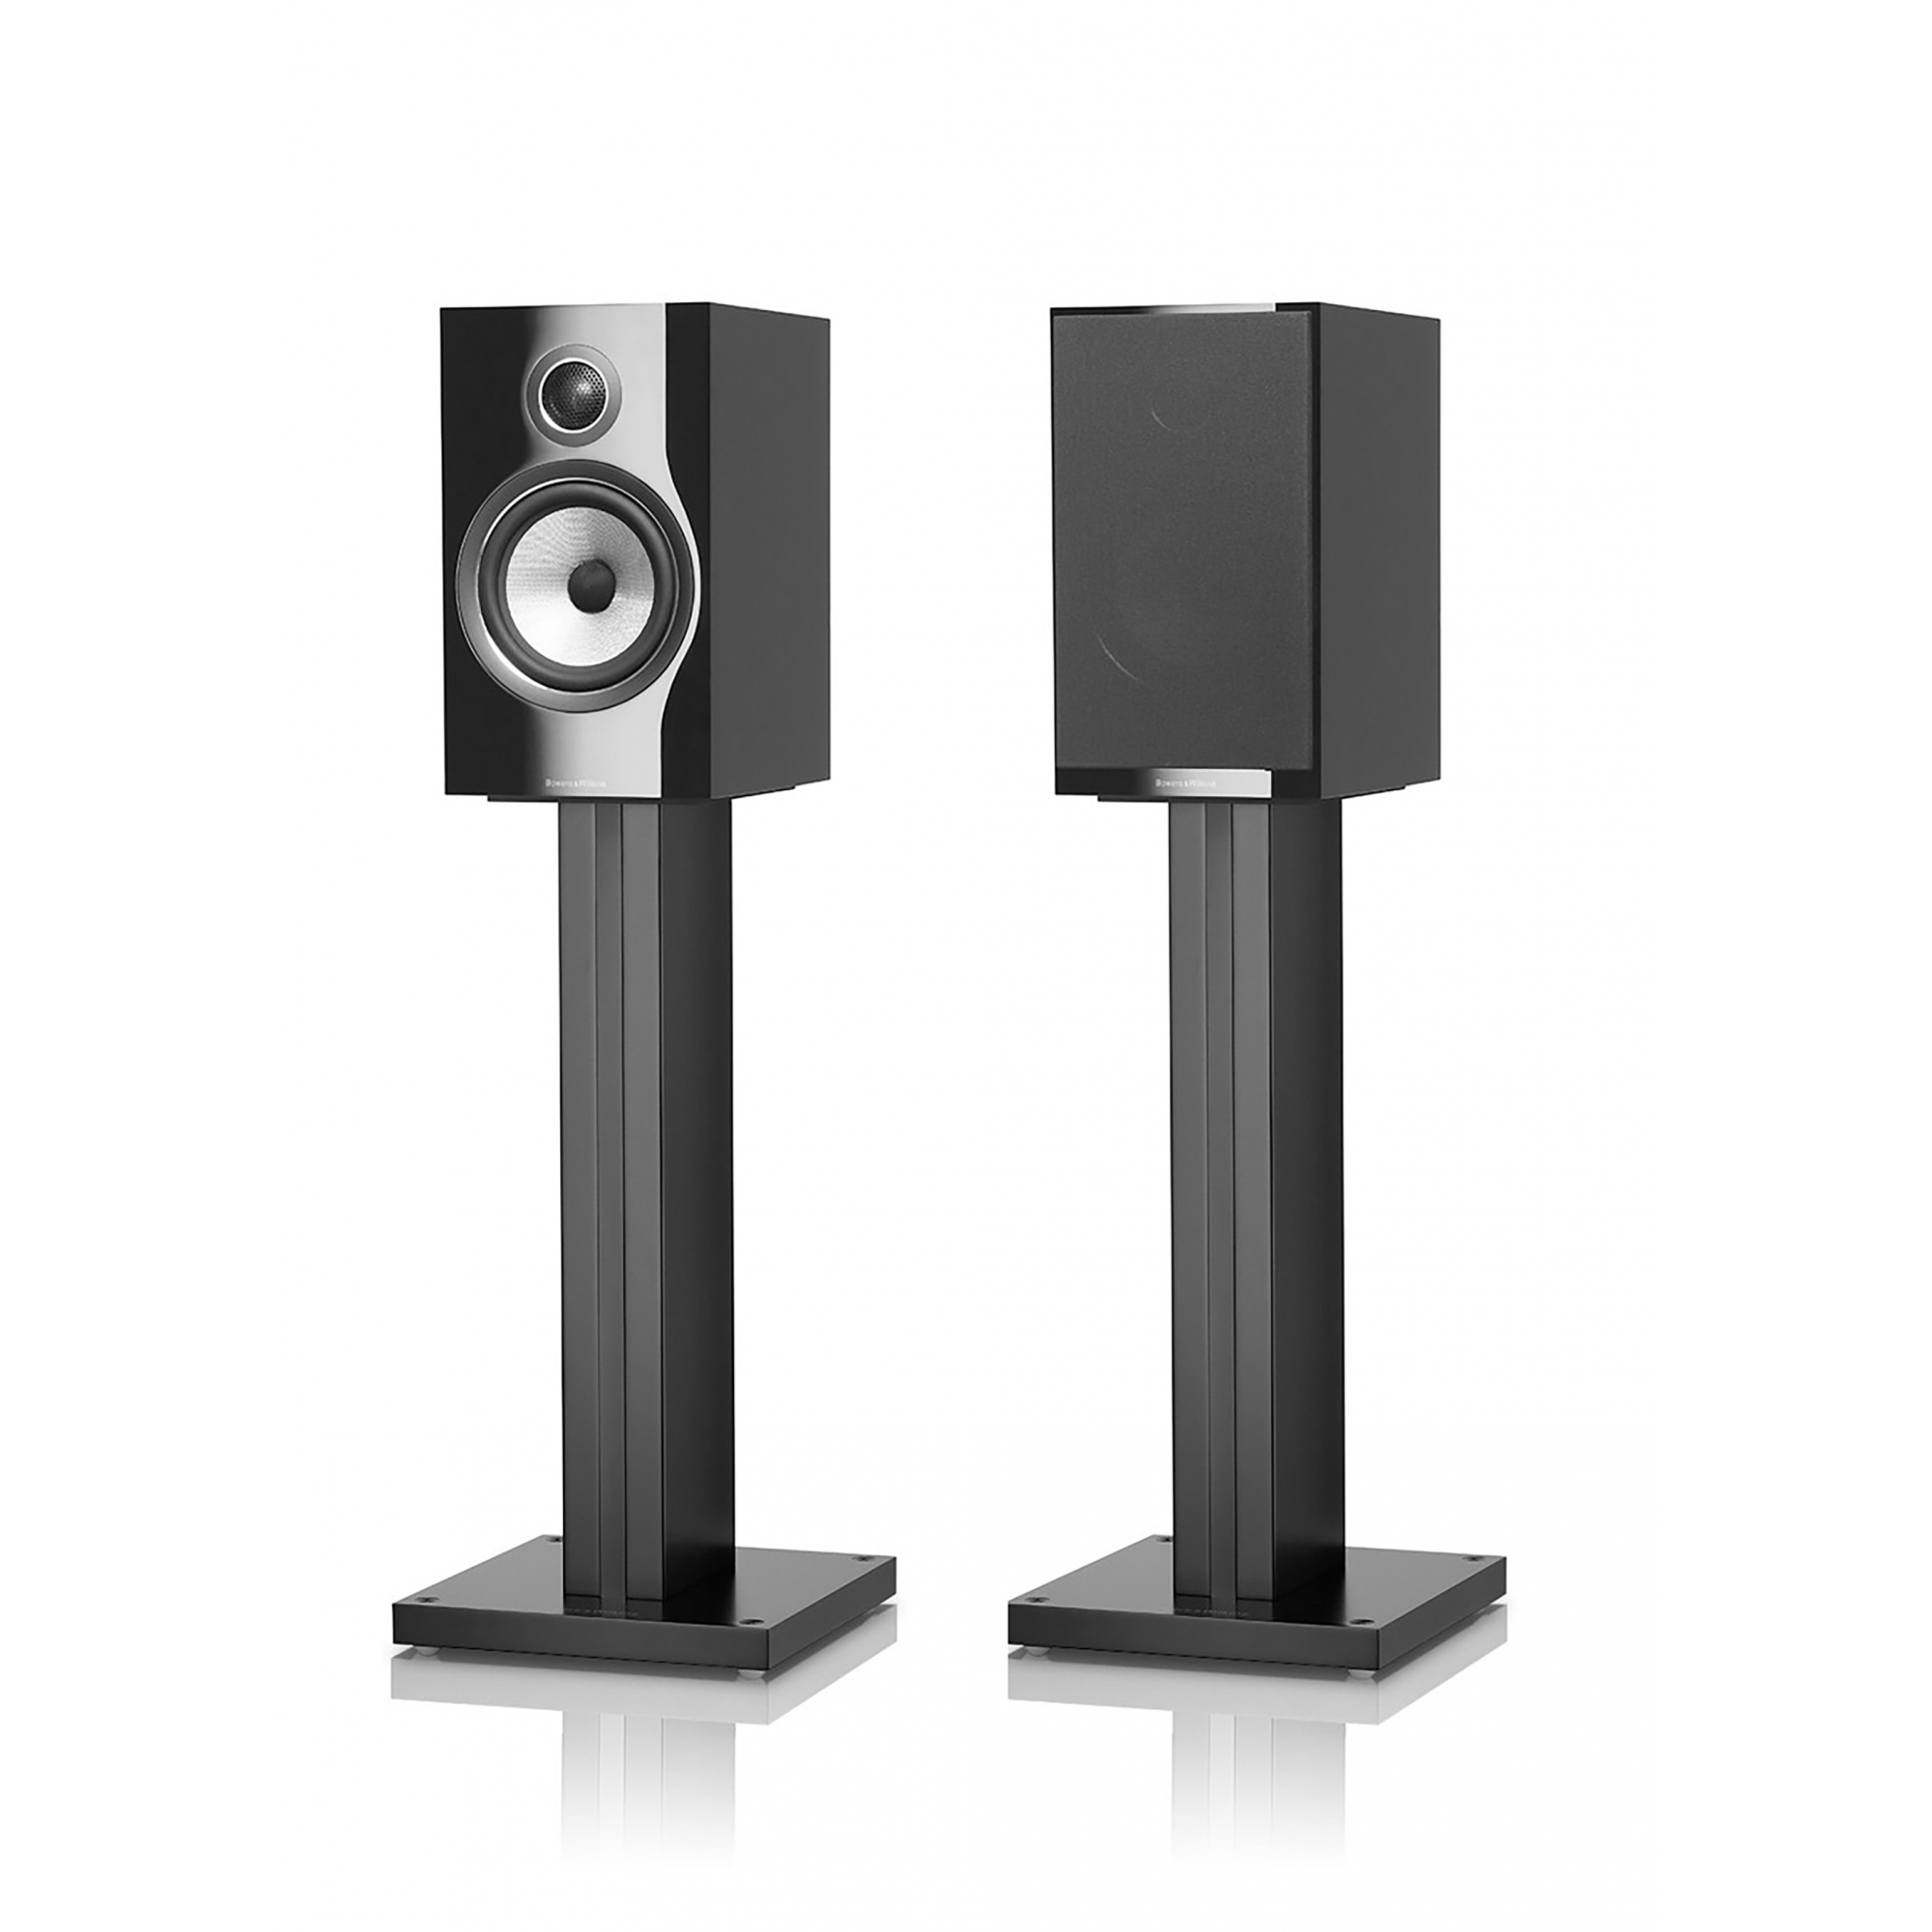 Bowers & Wilkins 706 S2 Par ( Gloss Black ) - Sem Estante